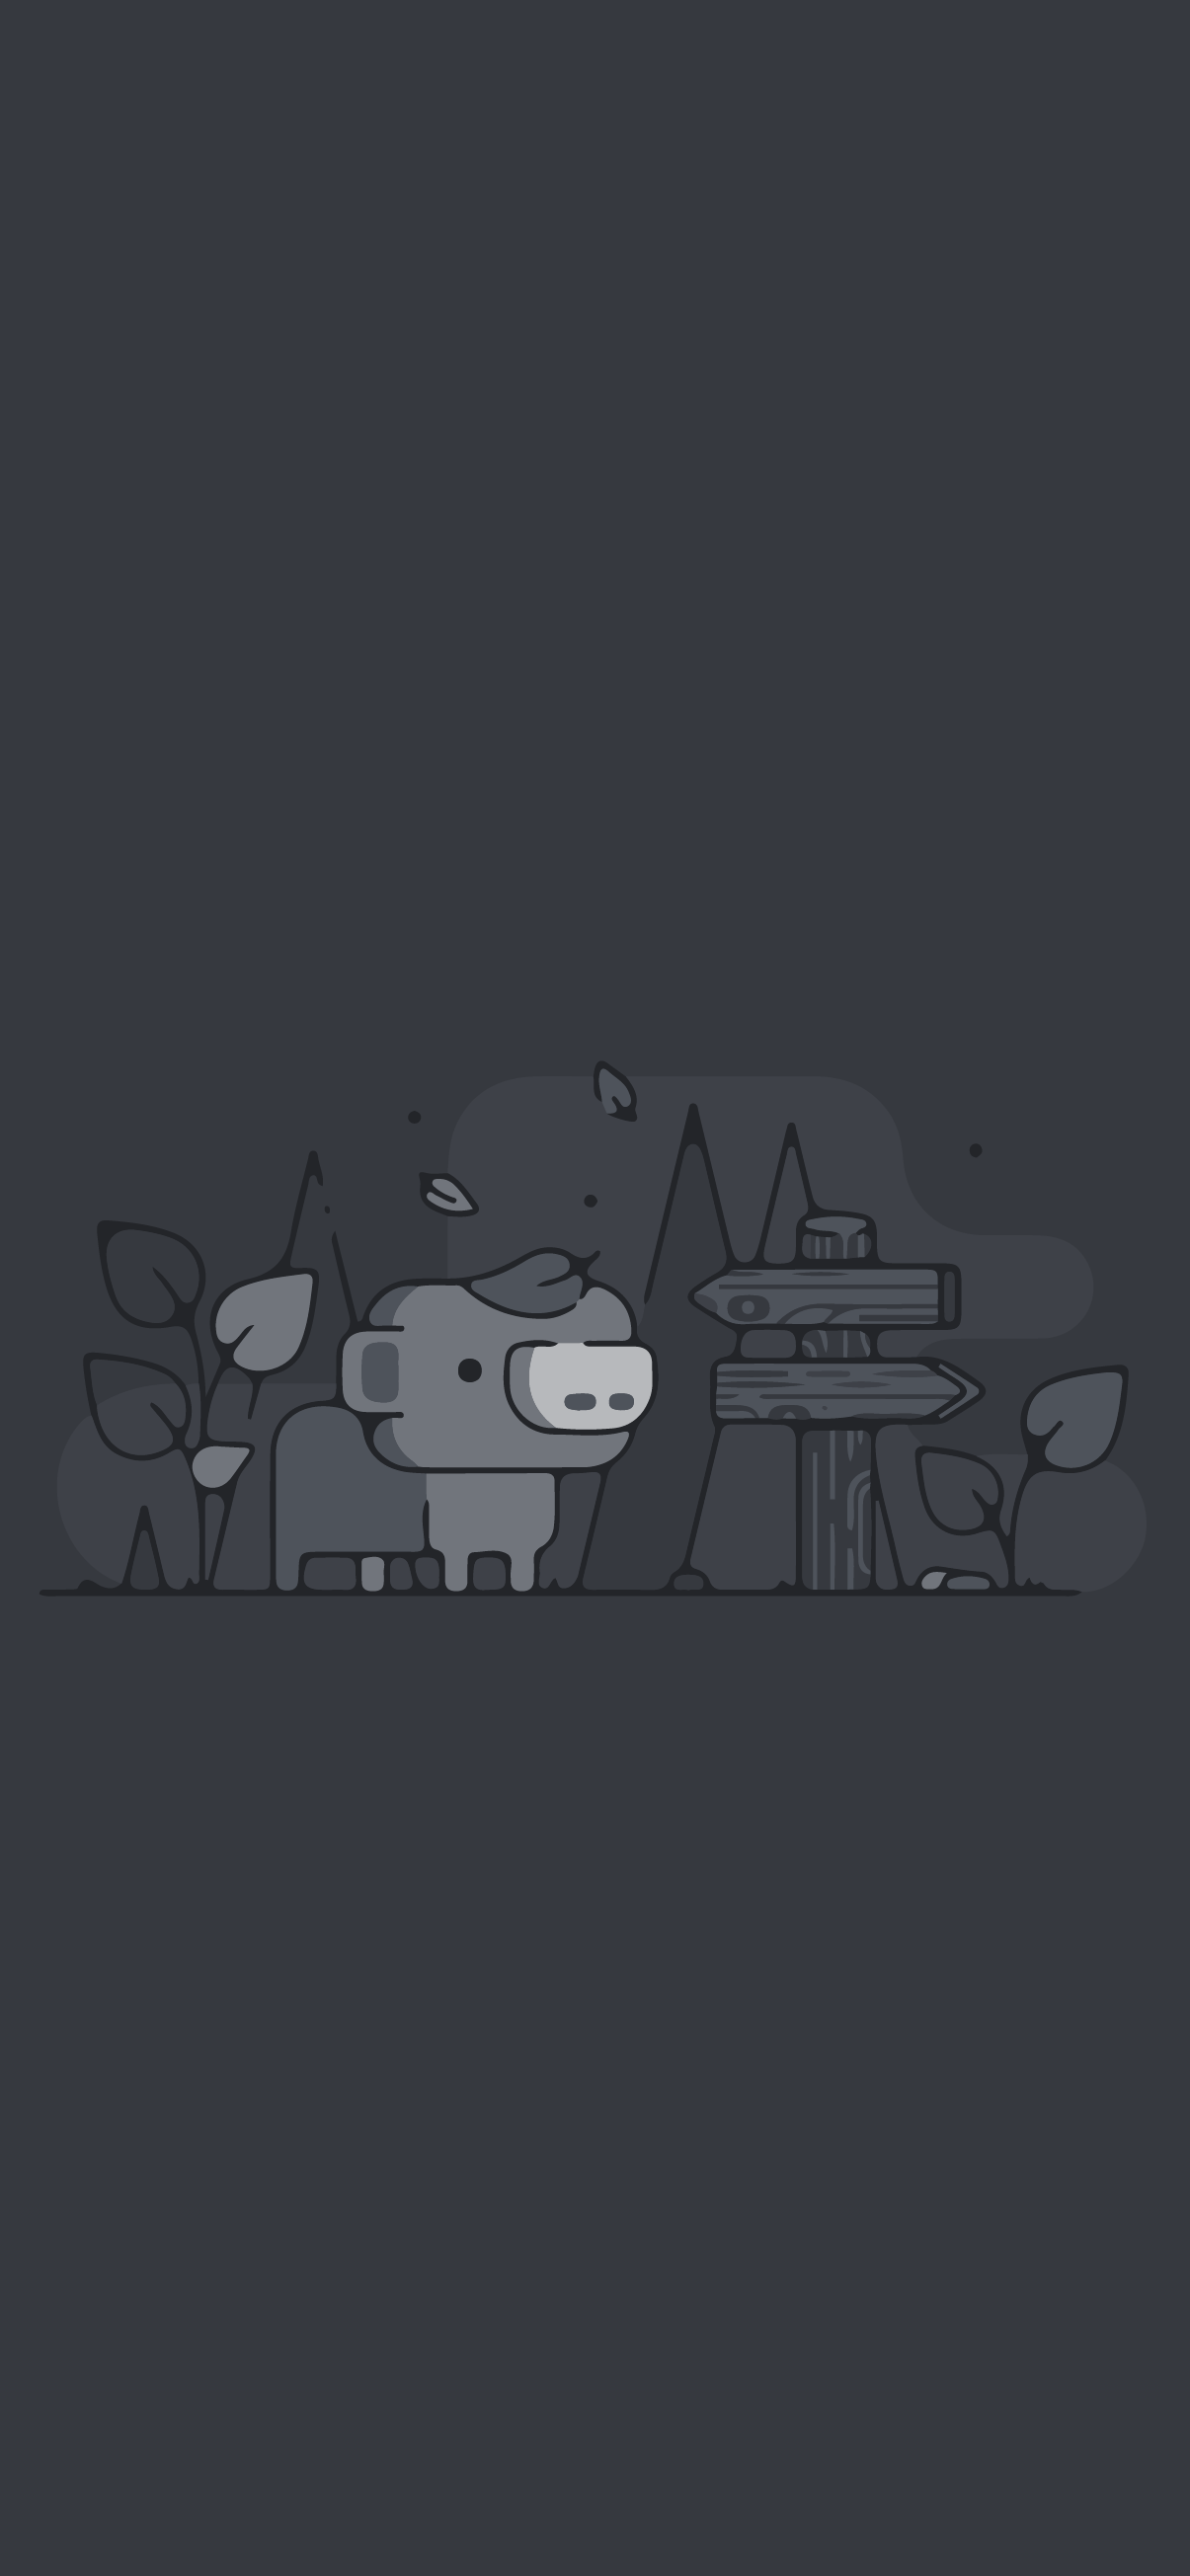 discord WUMPUS  wallpaper phone